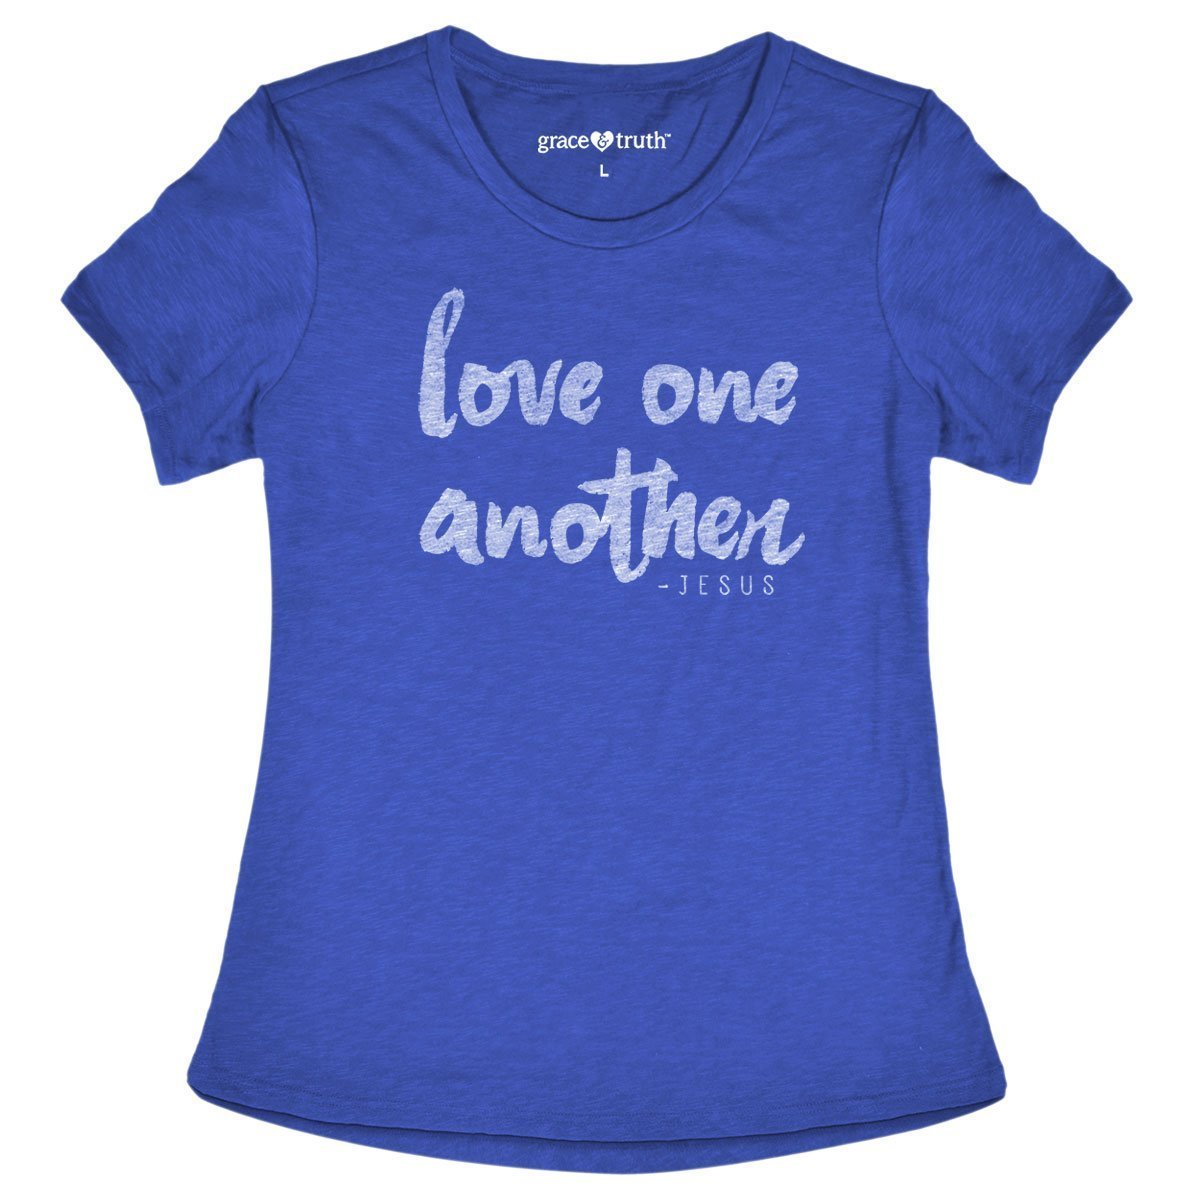 grace & truth® - Women's Adult T-Shirt - Love (Blue)